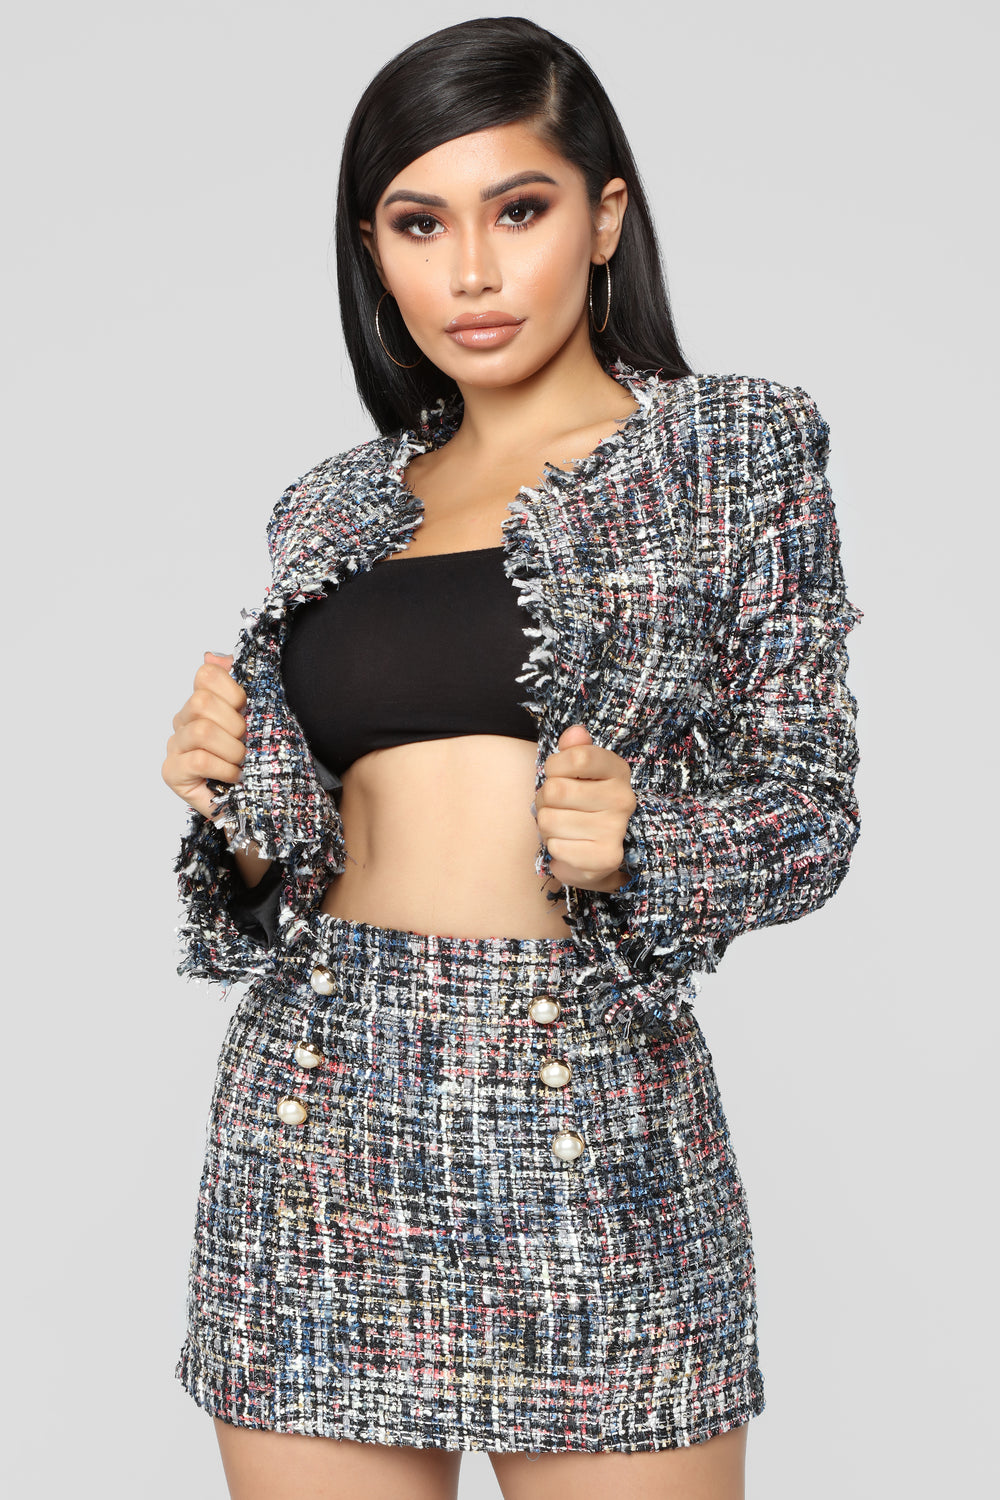 Not Sure About You Jacket - Black